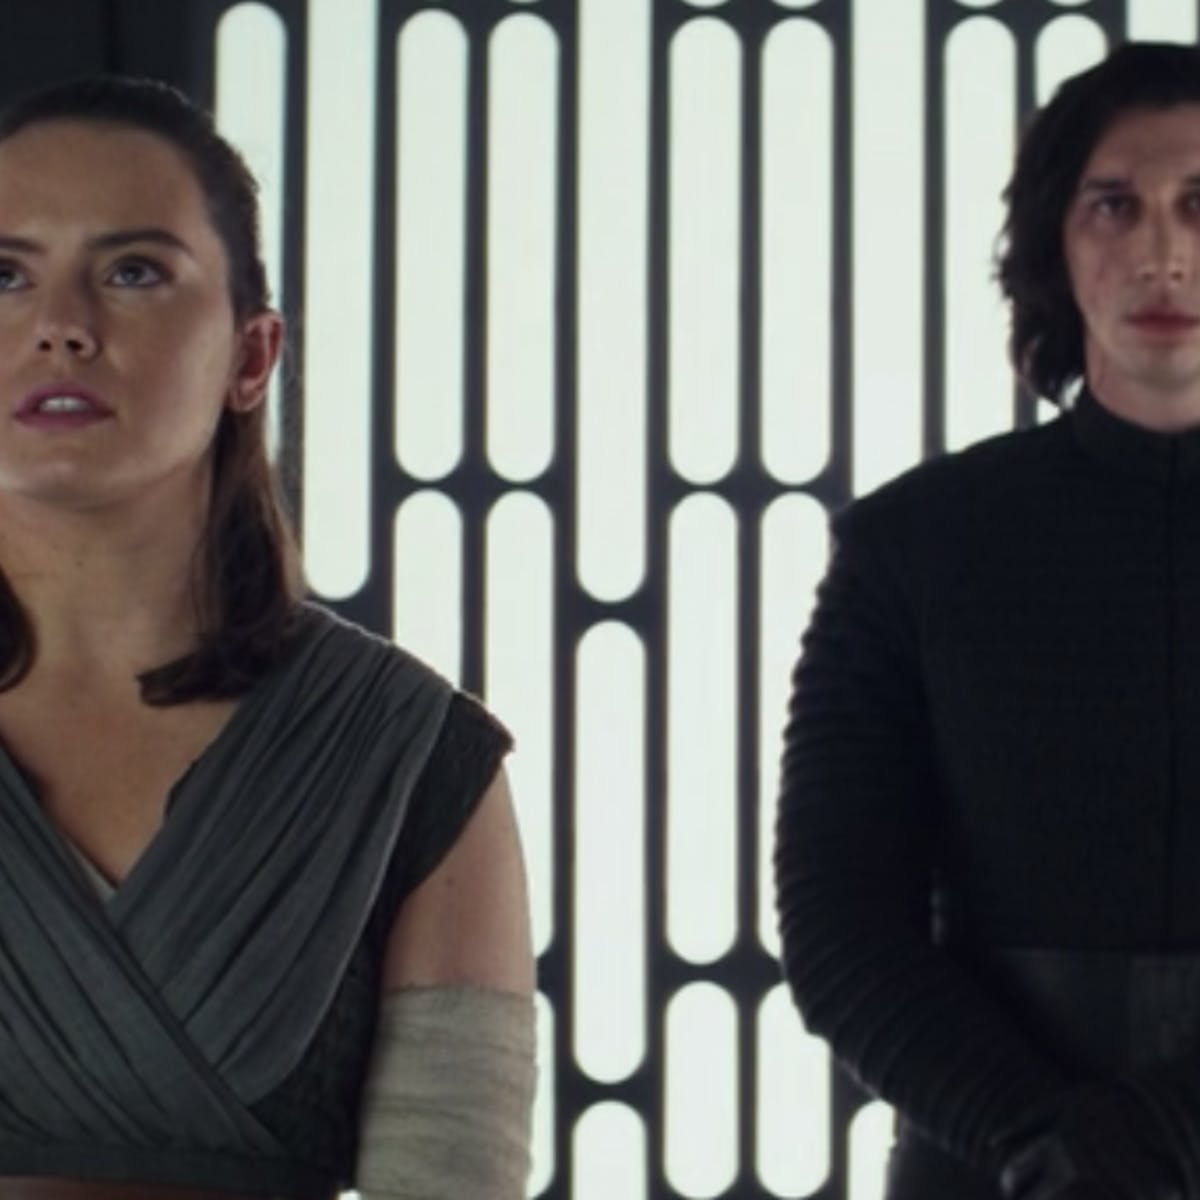 'Star Wars 9' spoilers: 3 ways Rey and Kylo's relationship could play out